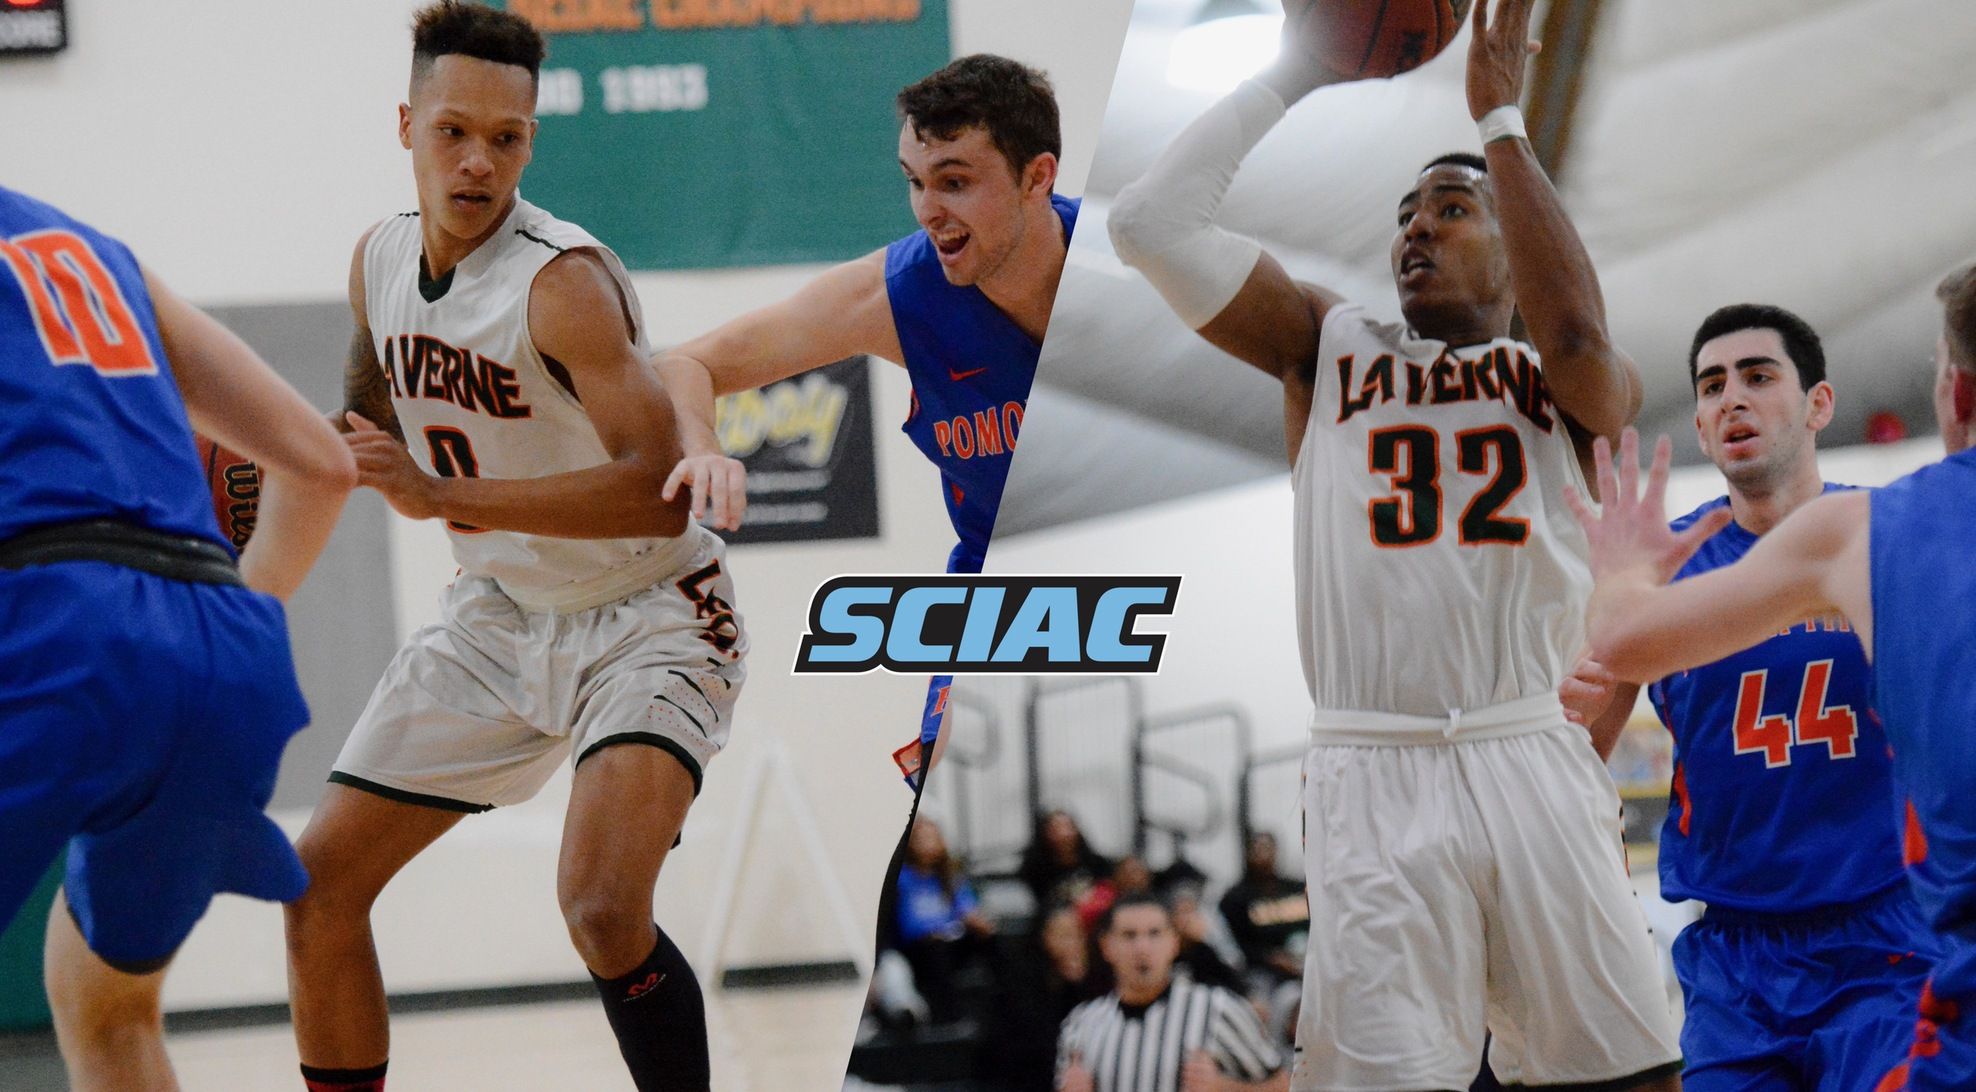 Arnold, White named All-SCIAC